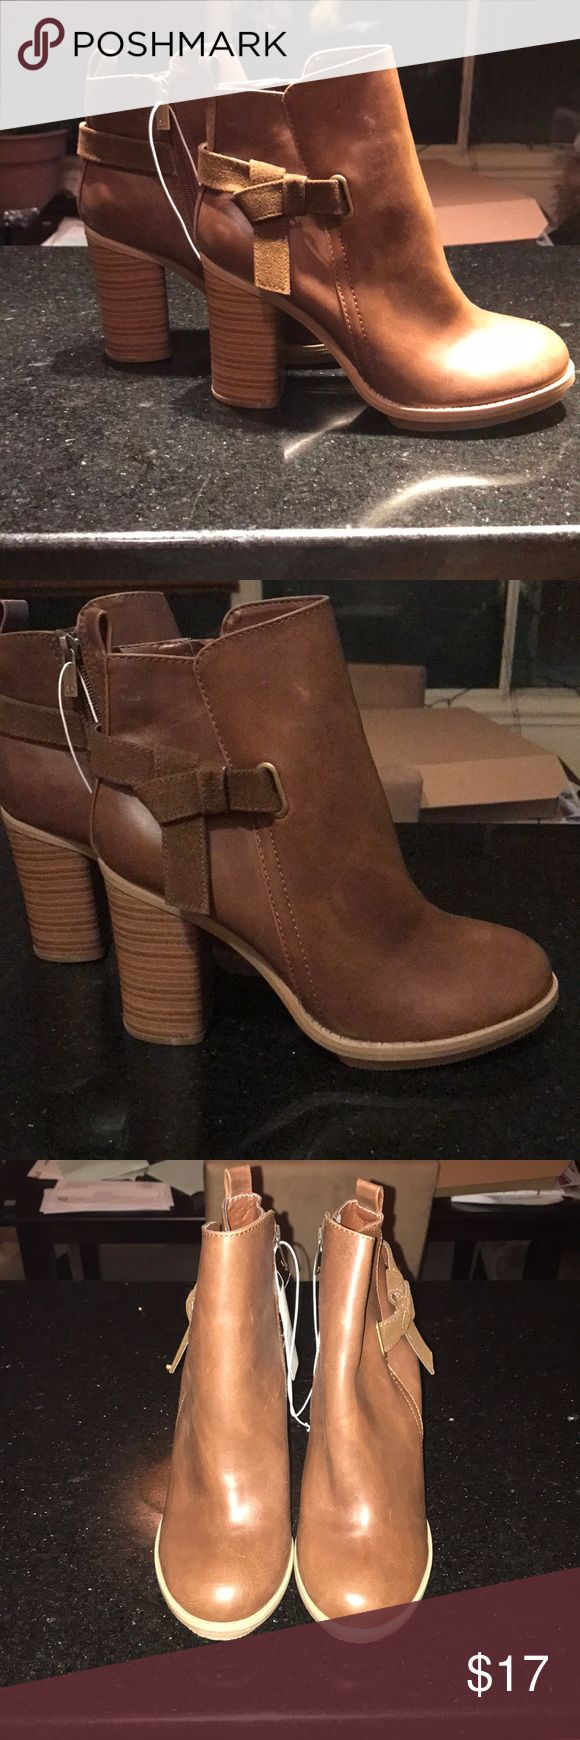 A+ by target Boots A+ by target booties !! These boots are gorgeous!! Super cute and stylish . They are brand new  in the box. Color is a gorgeous cognac . Size 7.5 . Heel is around 3.5 inches ! A+ By target Shoes Ankle Boots & Booties